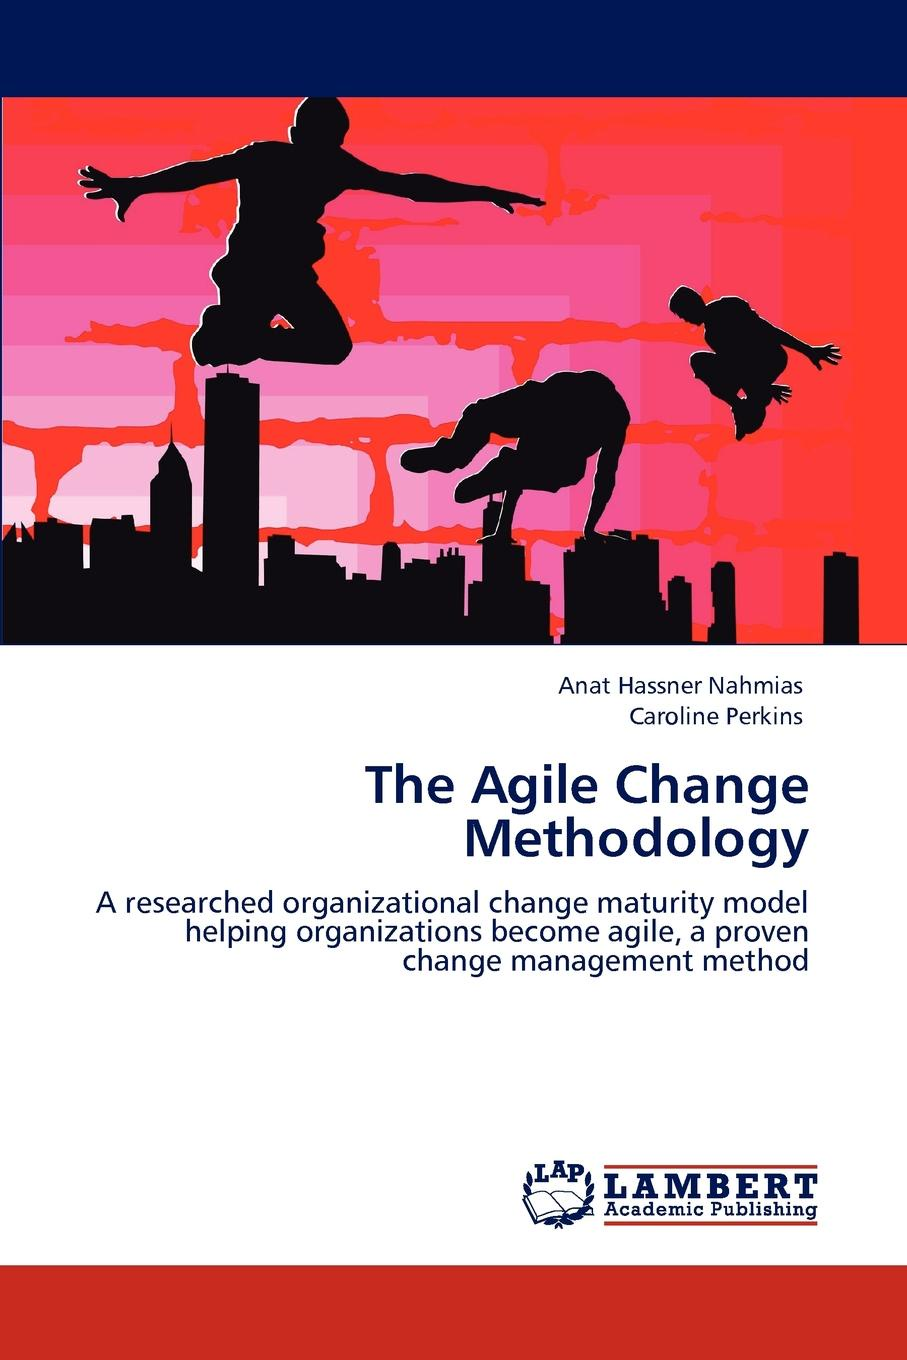 Anat Hassner Nahmias, Caroline Perkins The Agile Change Methodology sherwyn morreale building the high trust organization strategies for supporting five key dimensions of trust